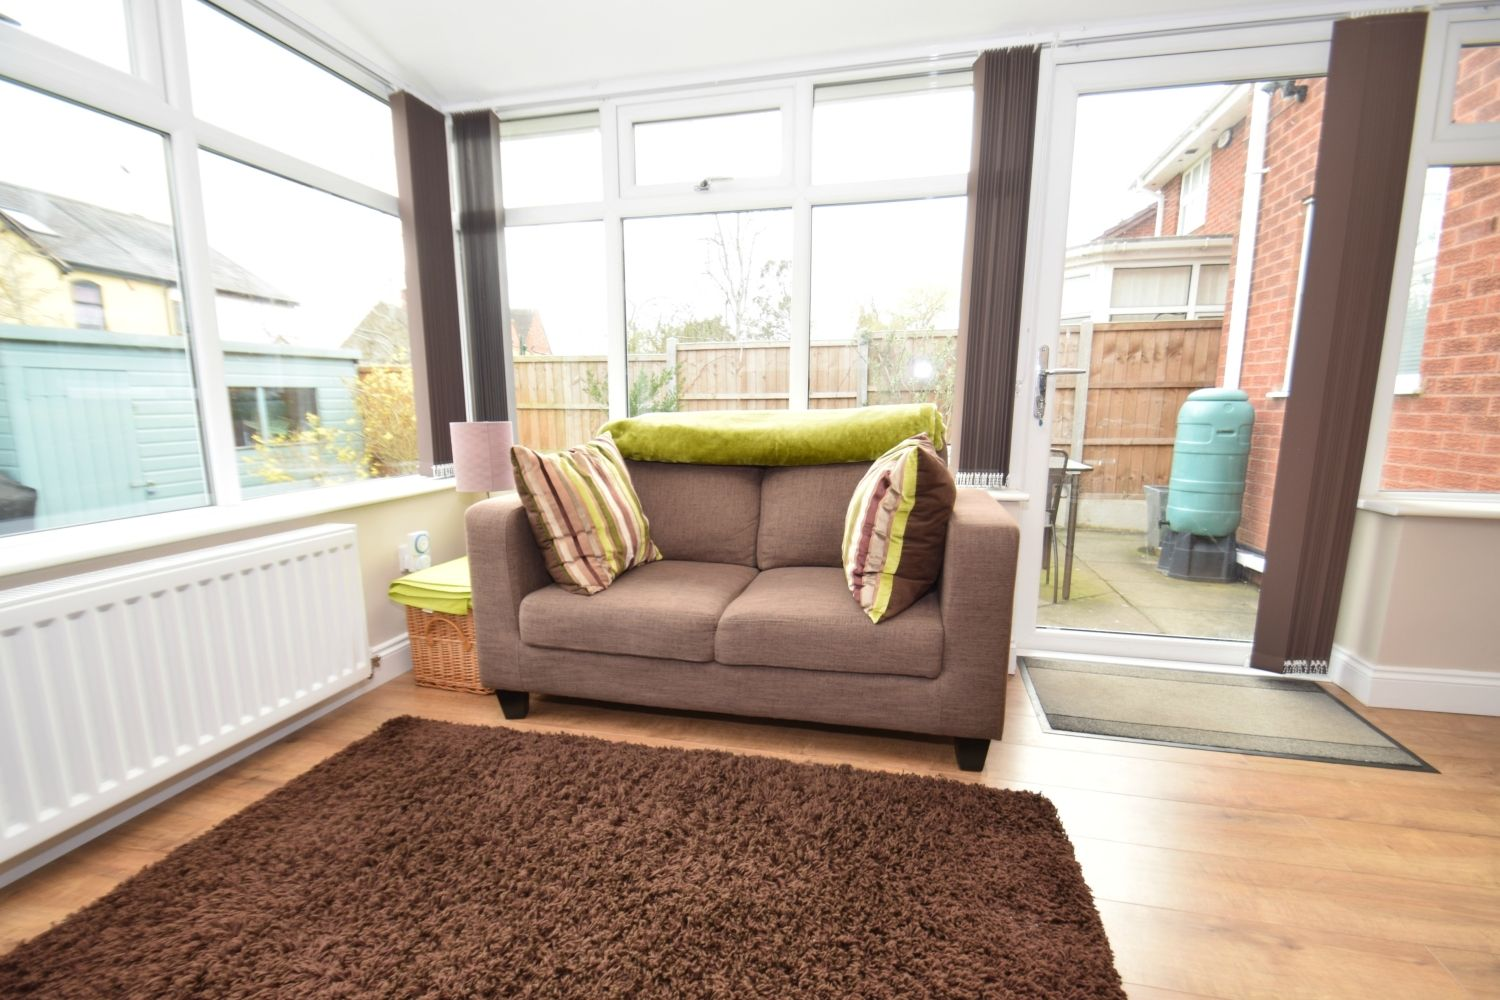 3 bed detached for sale in Foxes Close, Blackwell, B60 9